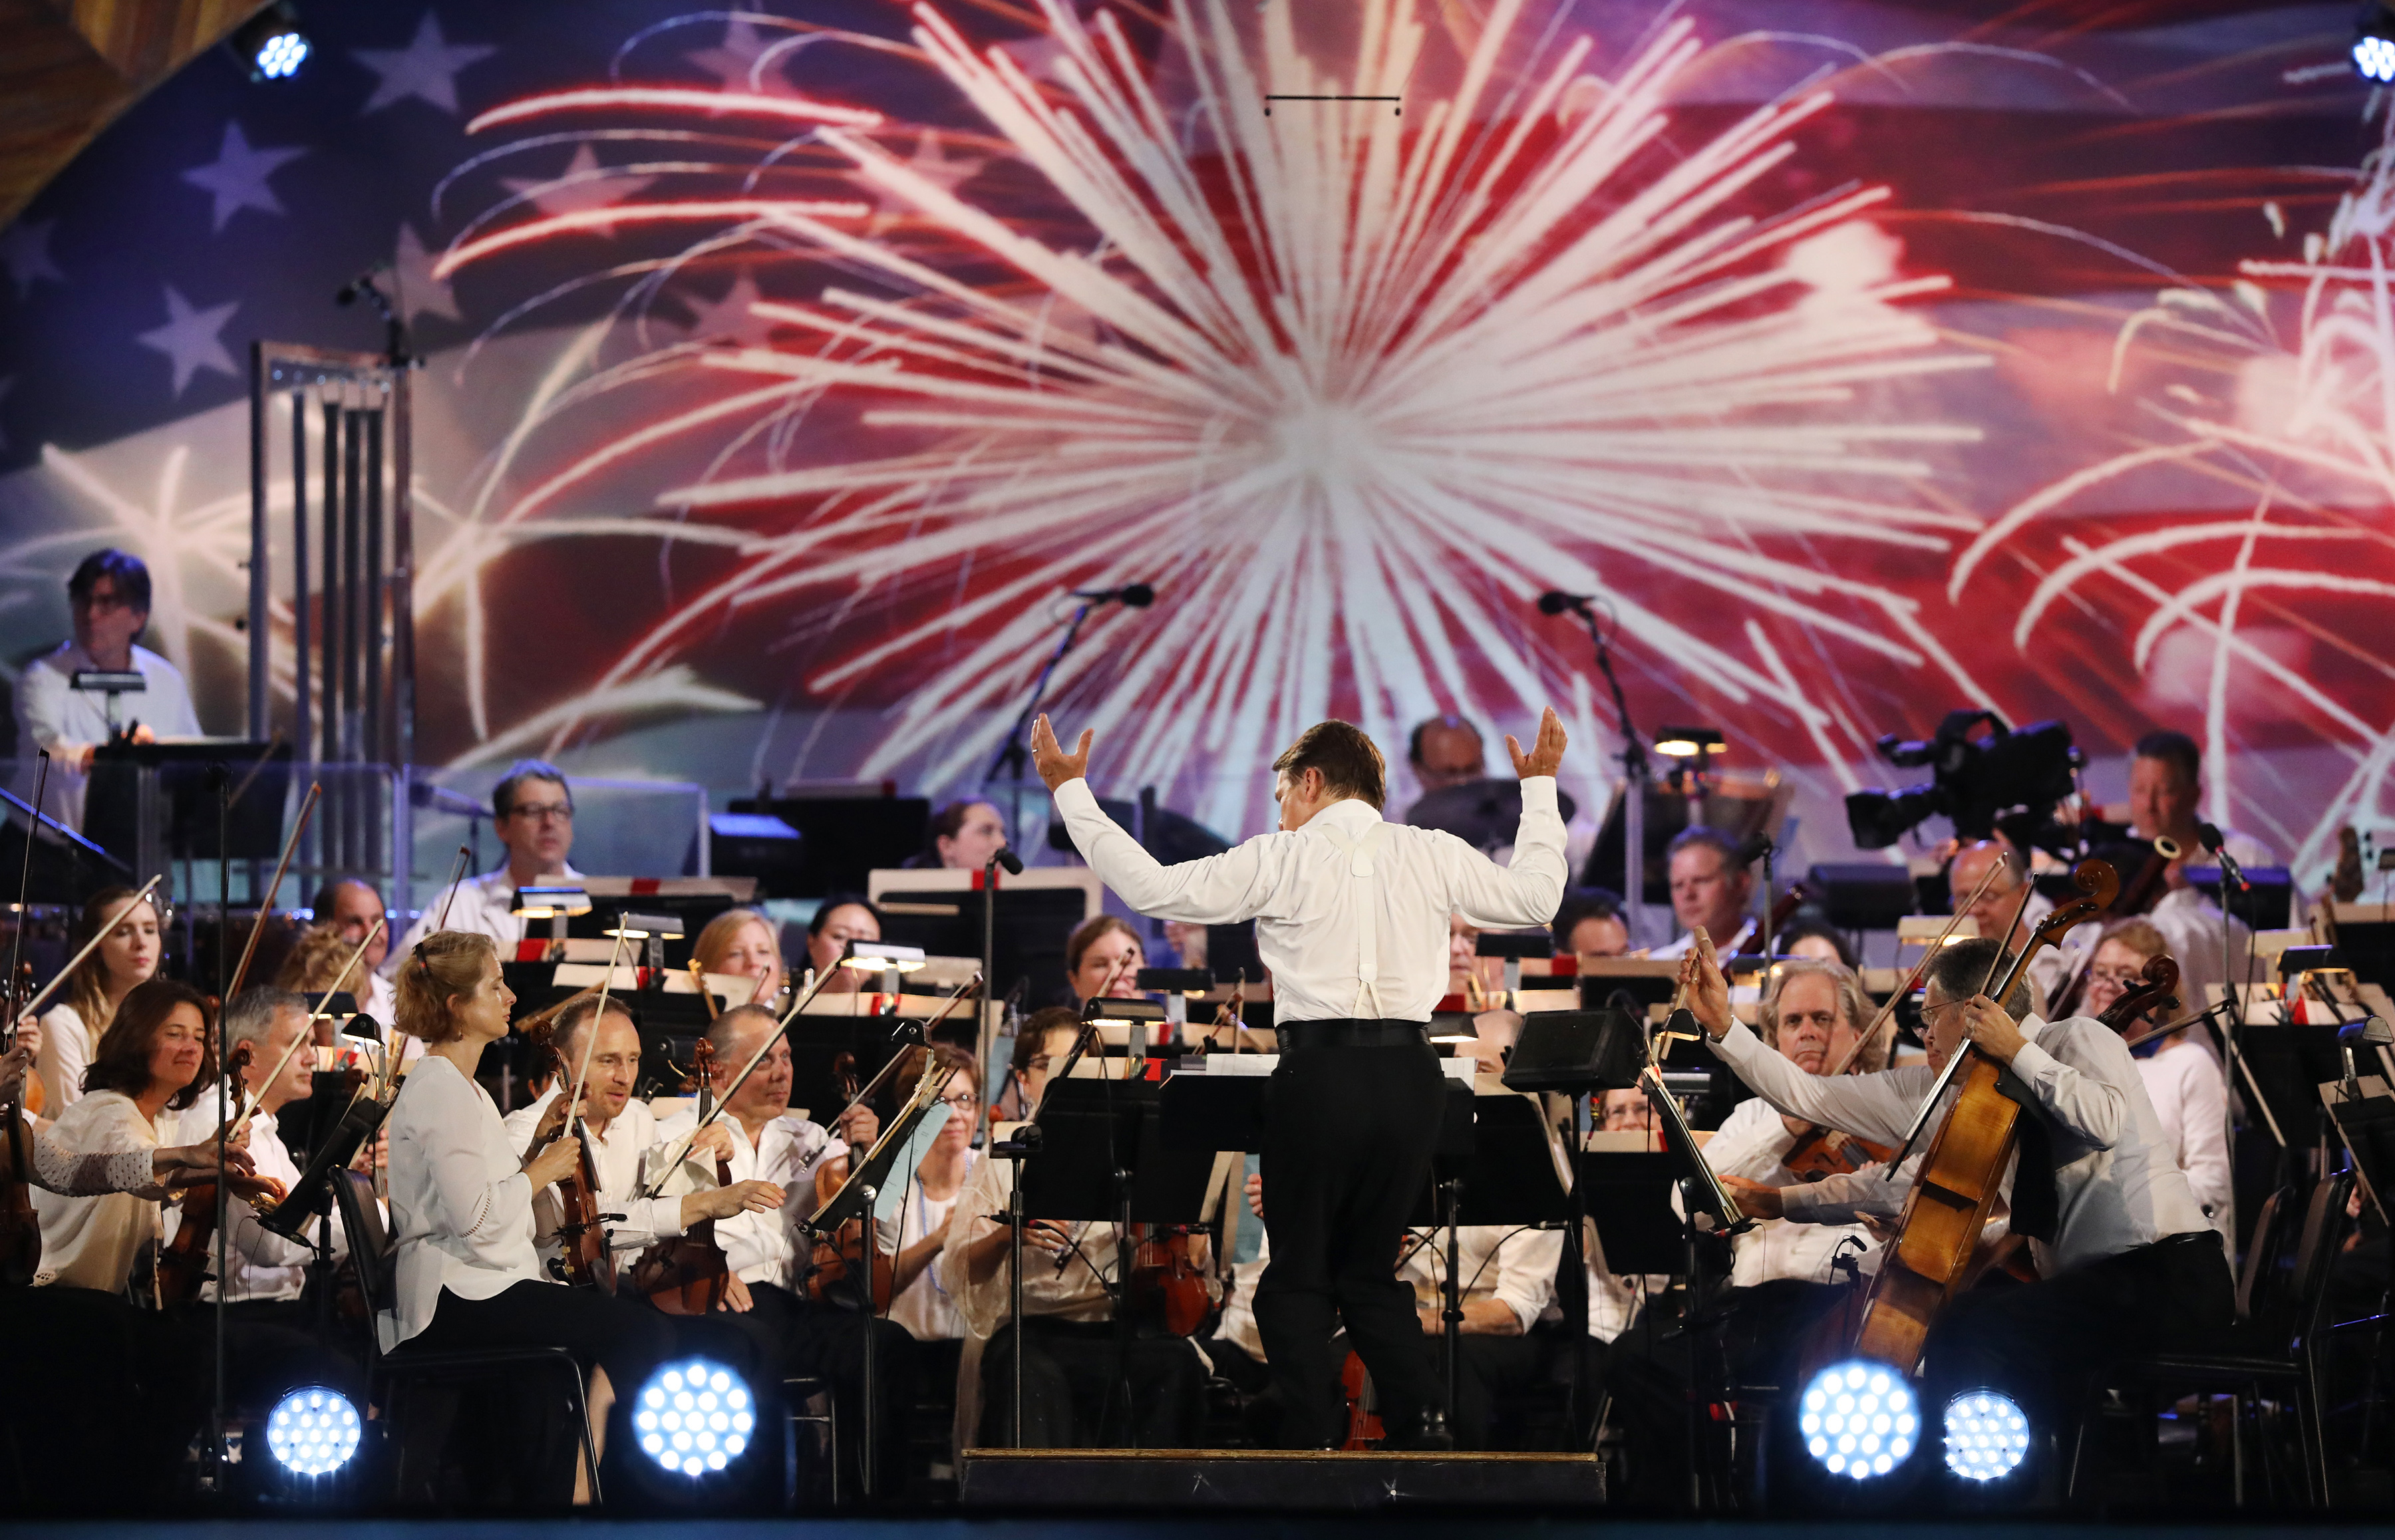 How to watch the Boston Pops Fireworks Spectacular on the